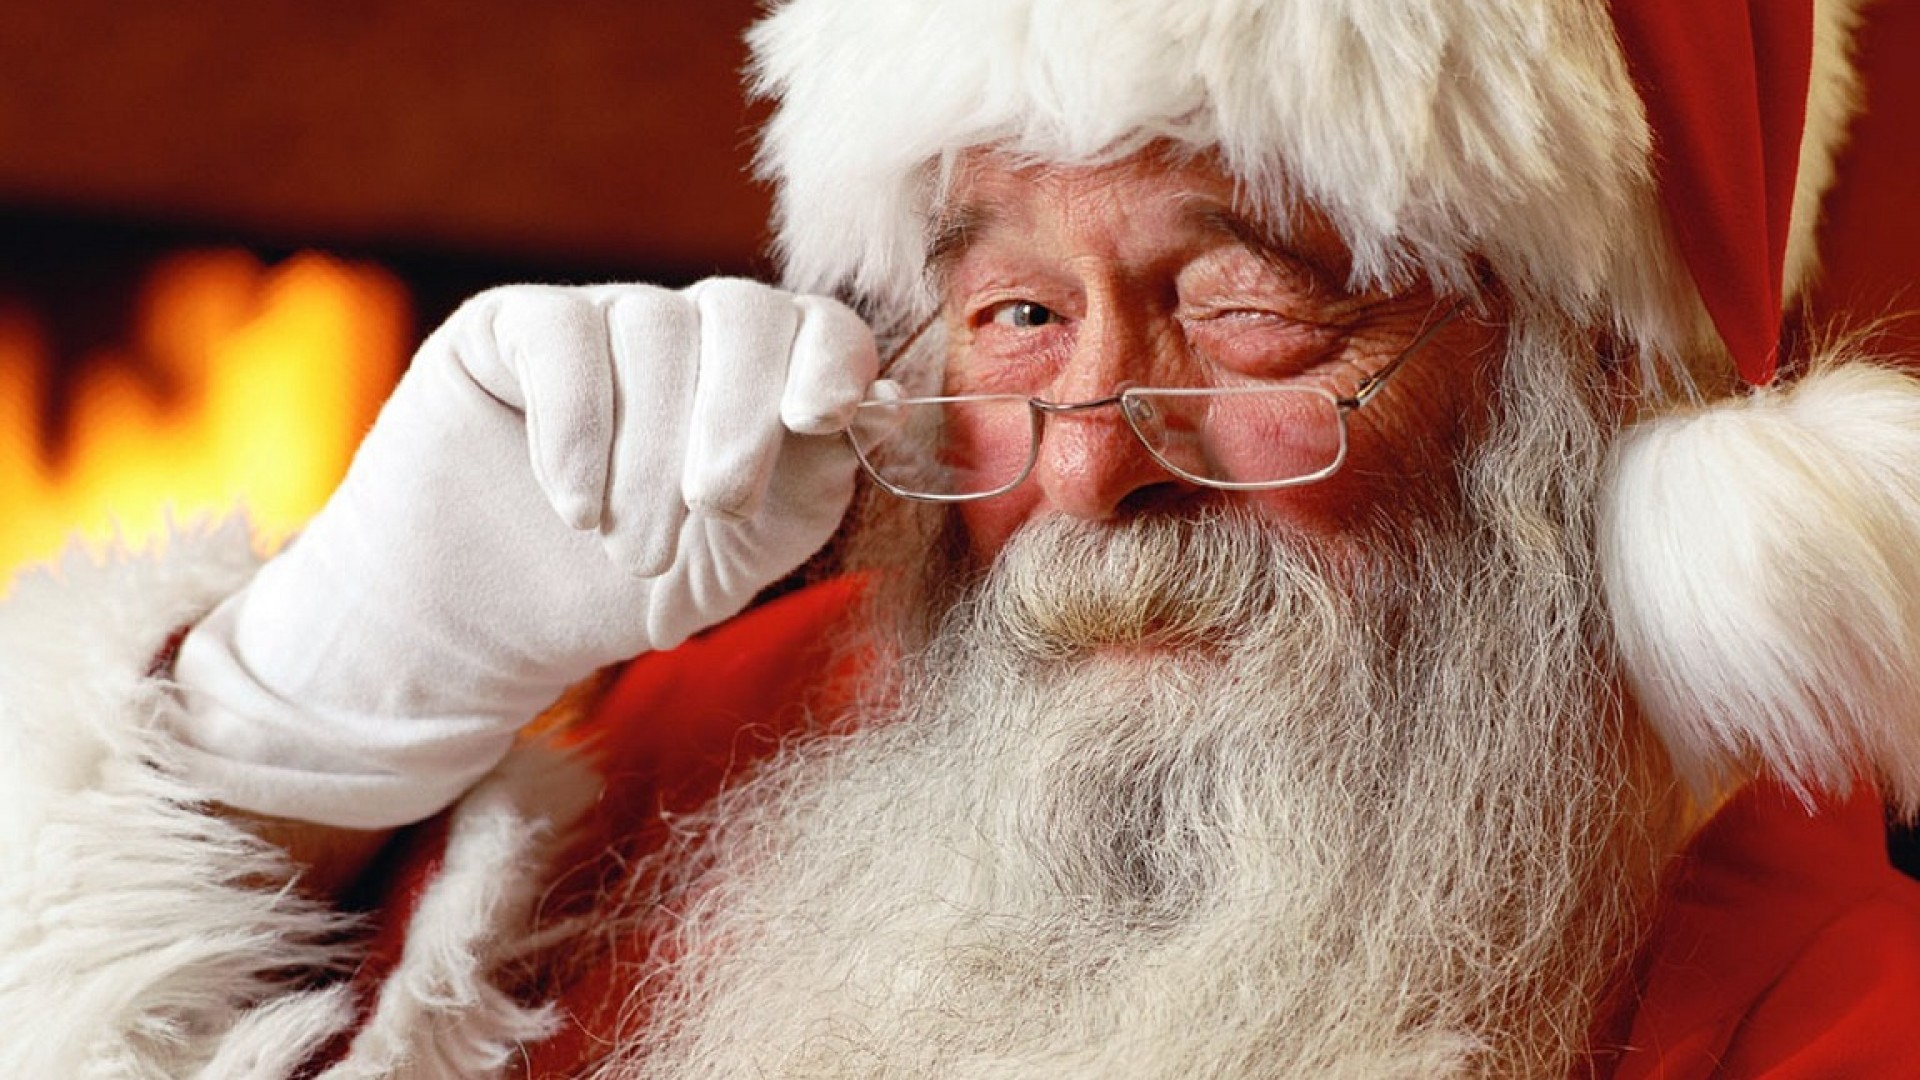 Santa Claus Funny Images